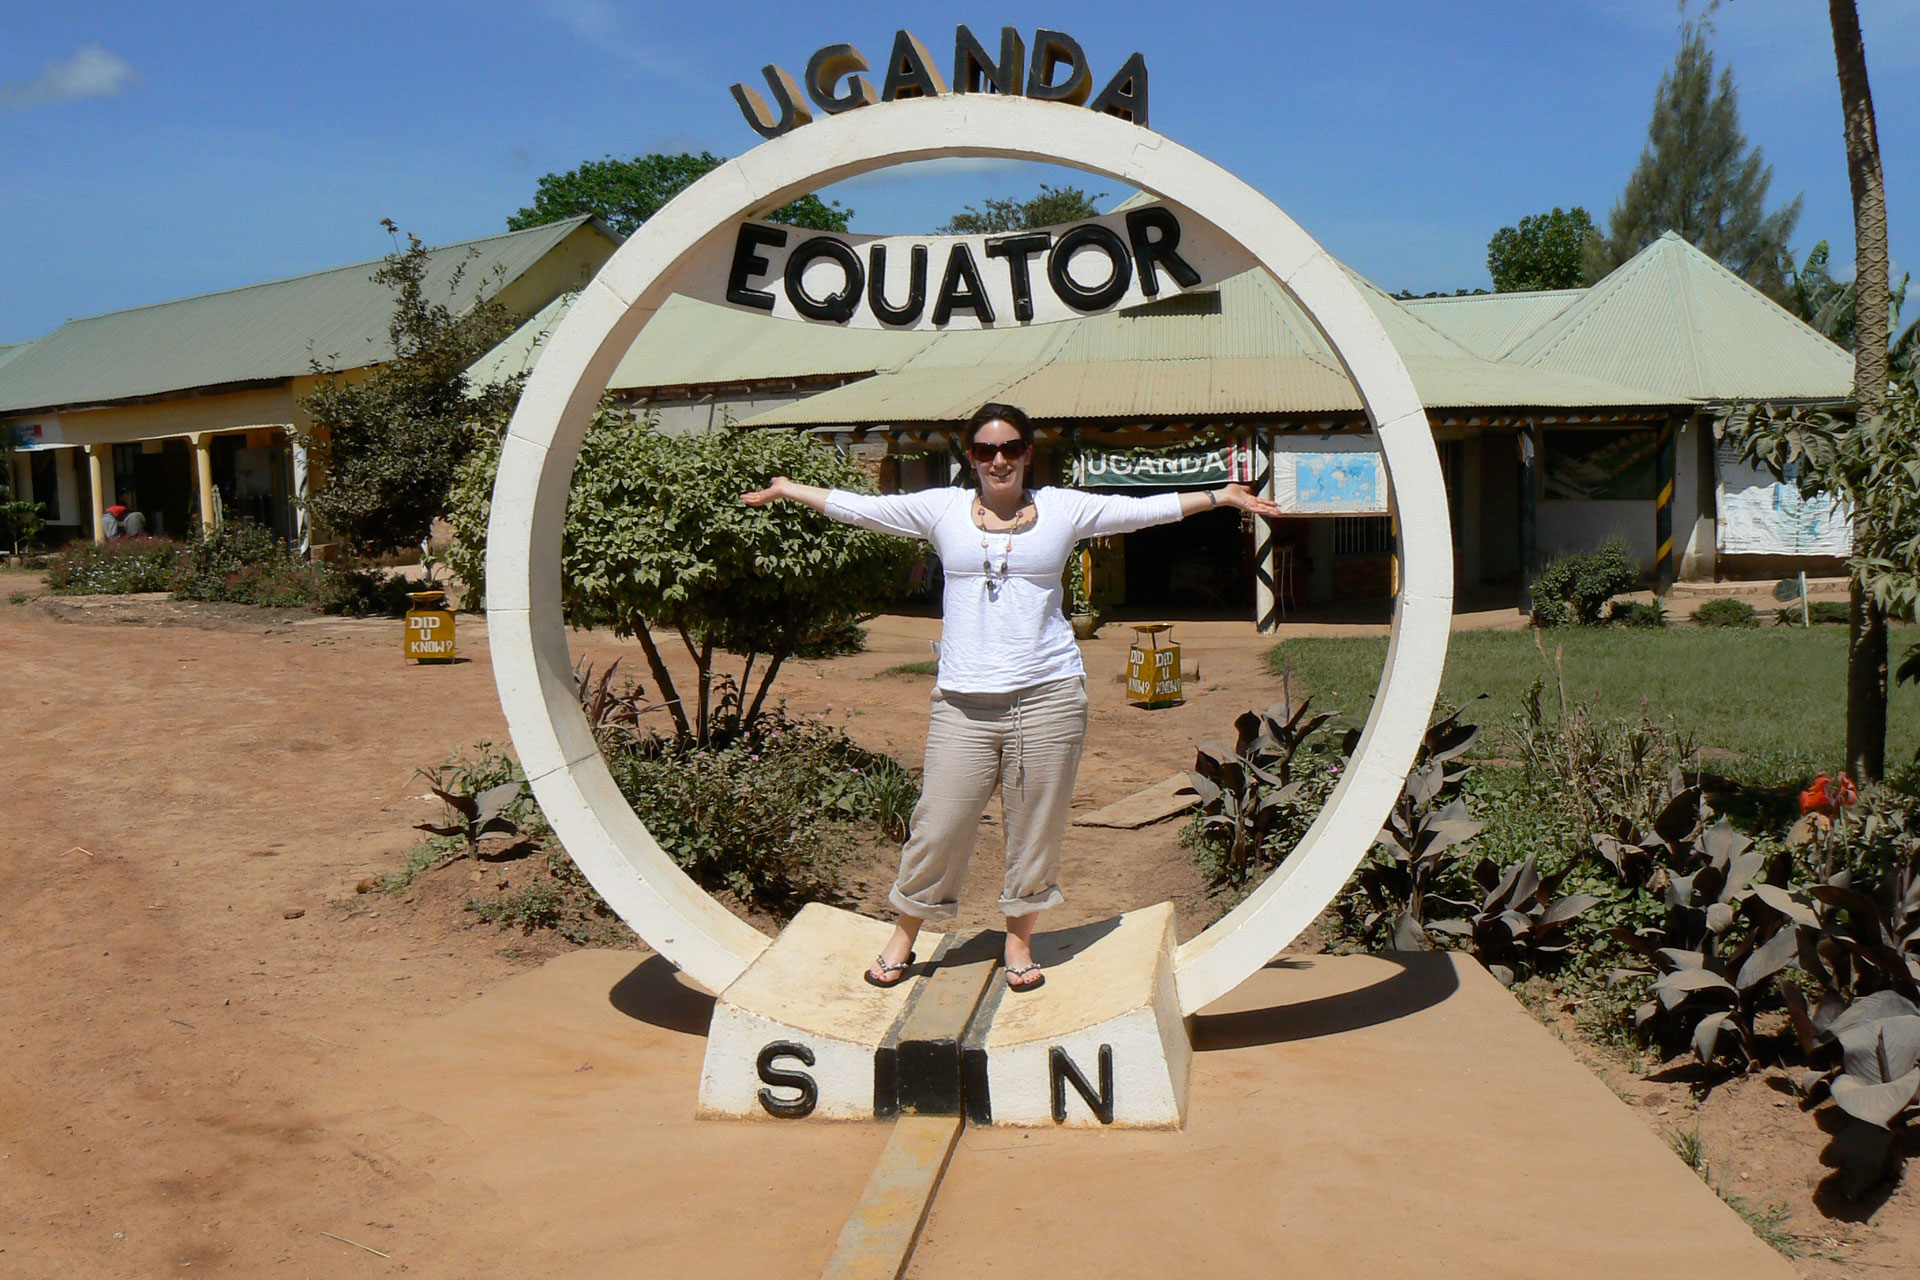 The equator passes through which African nations?